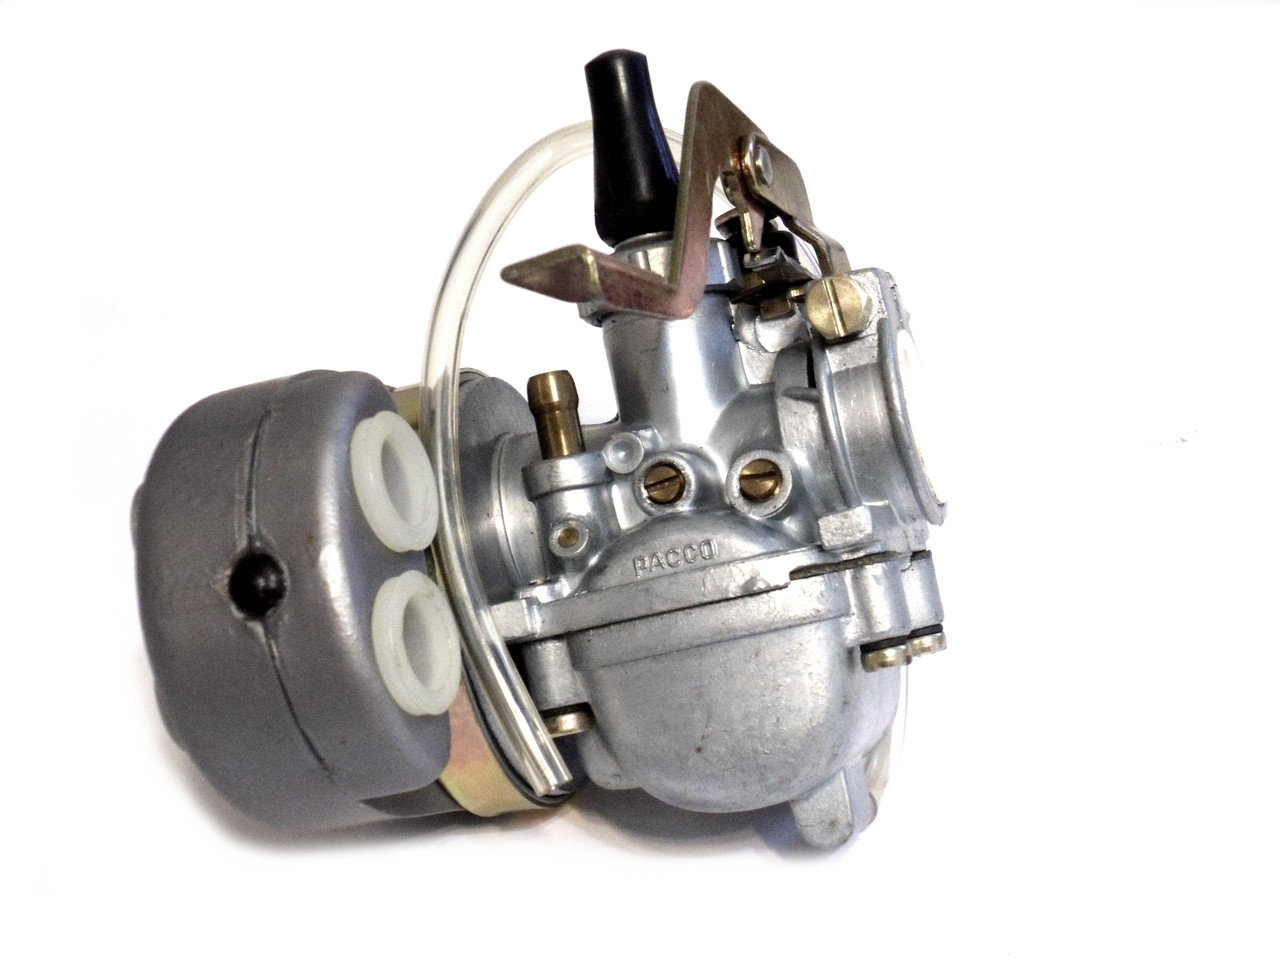 Avanti Moped Original Pacco P60-MT 13mm Carburetor